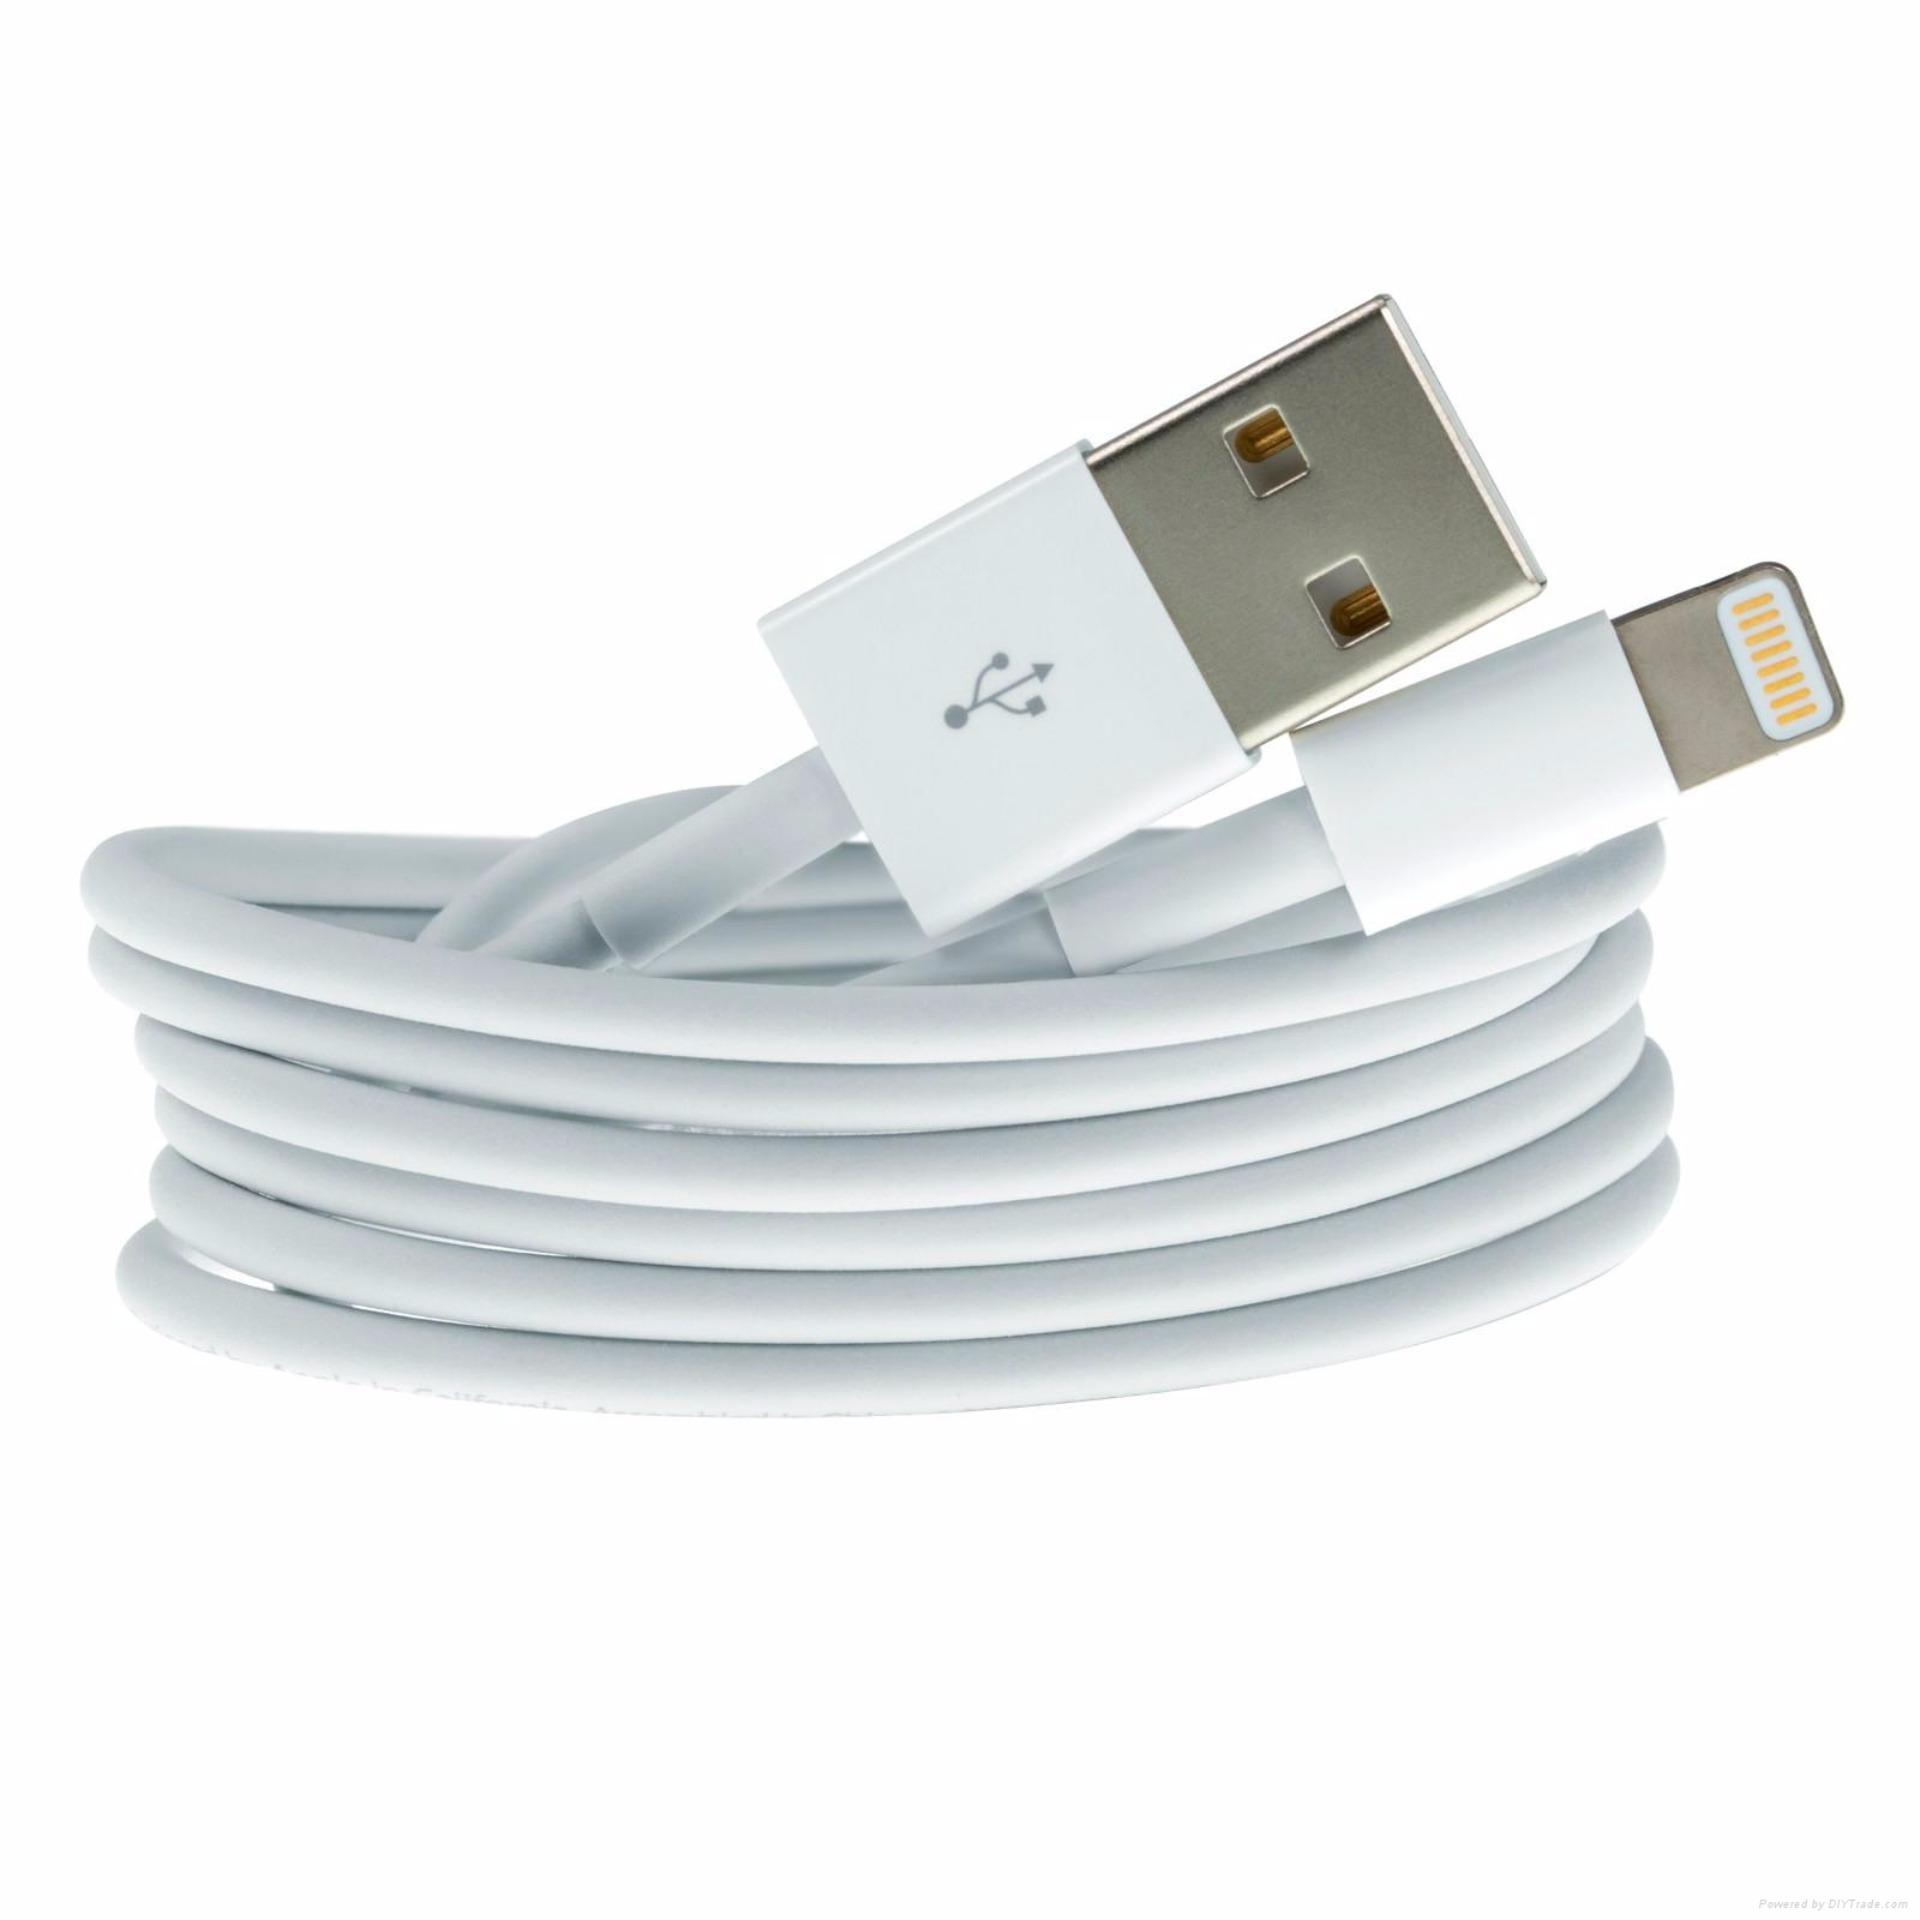 Apple Lighting to USB Cable / Kable Data iPhone 5 Original